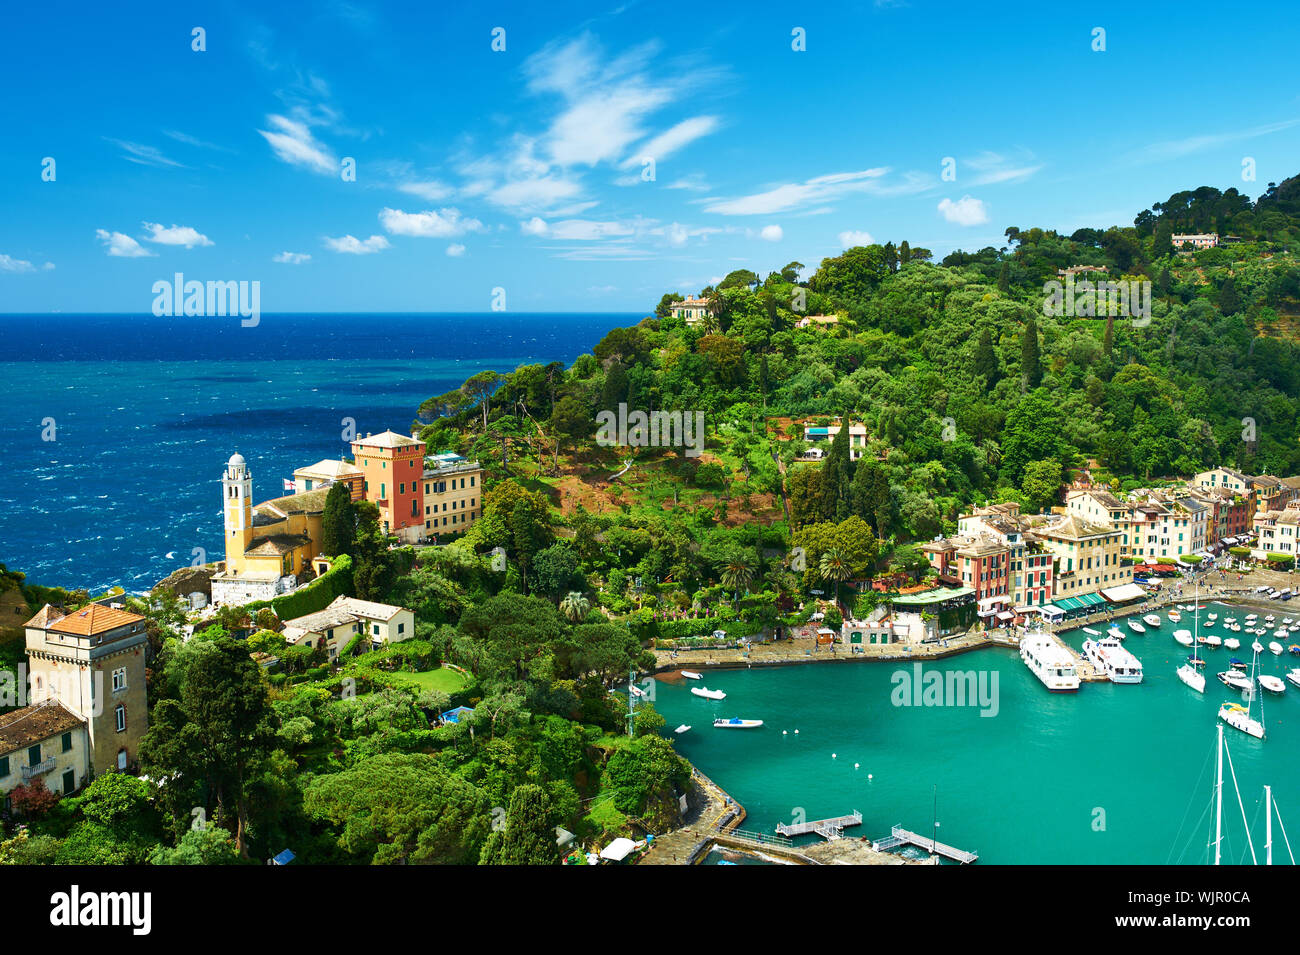 Portofino village on Ligurian coast in Italy Stock Photo